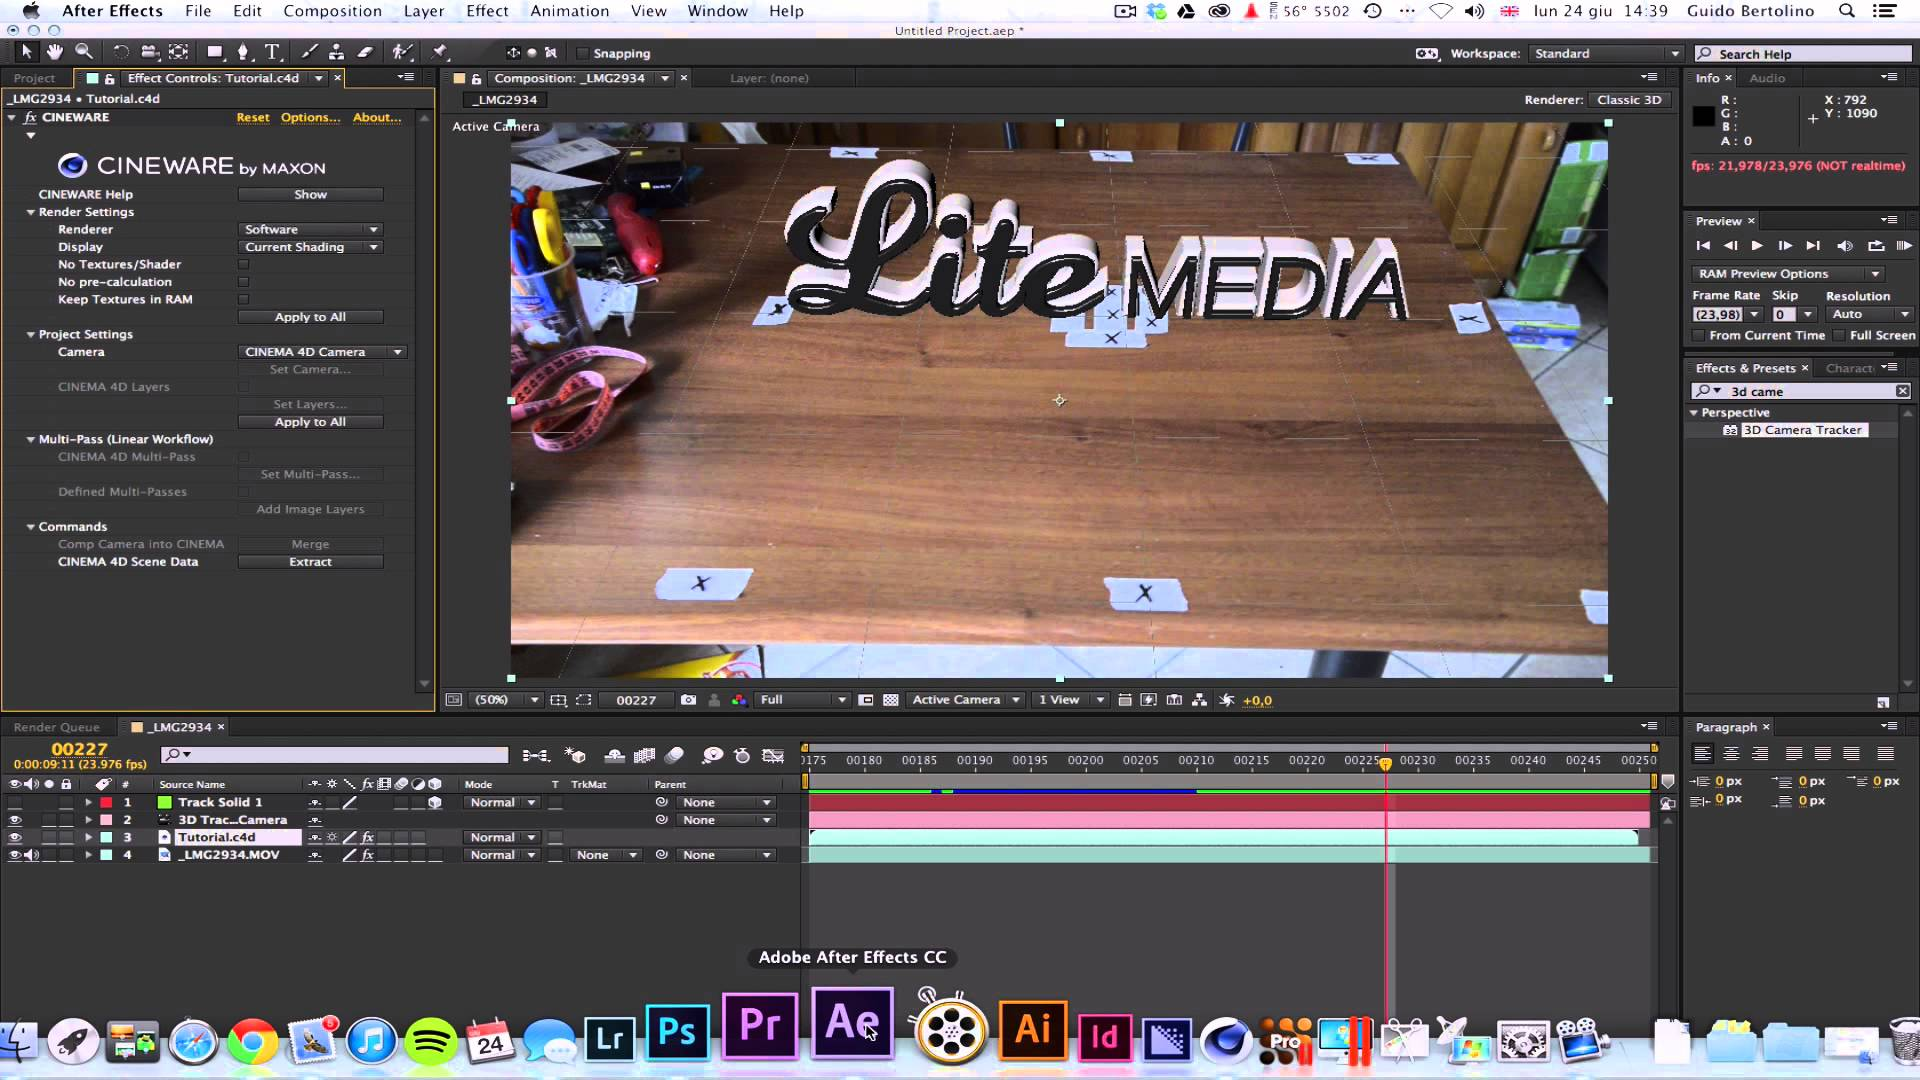 Adobe After Effects CC 12.0.0.404 中文版